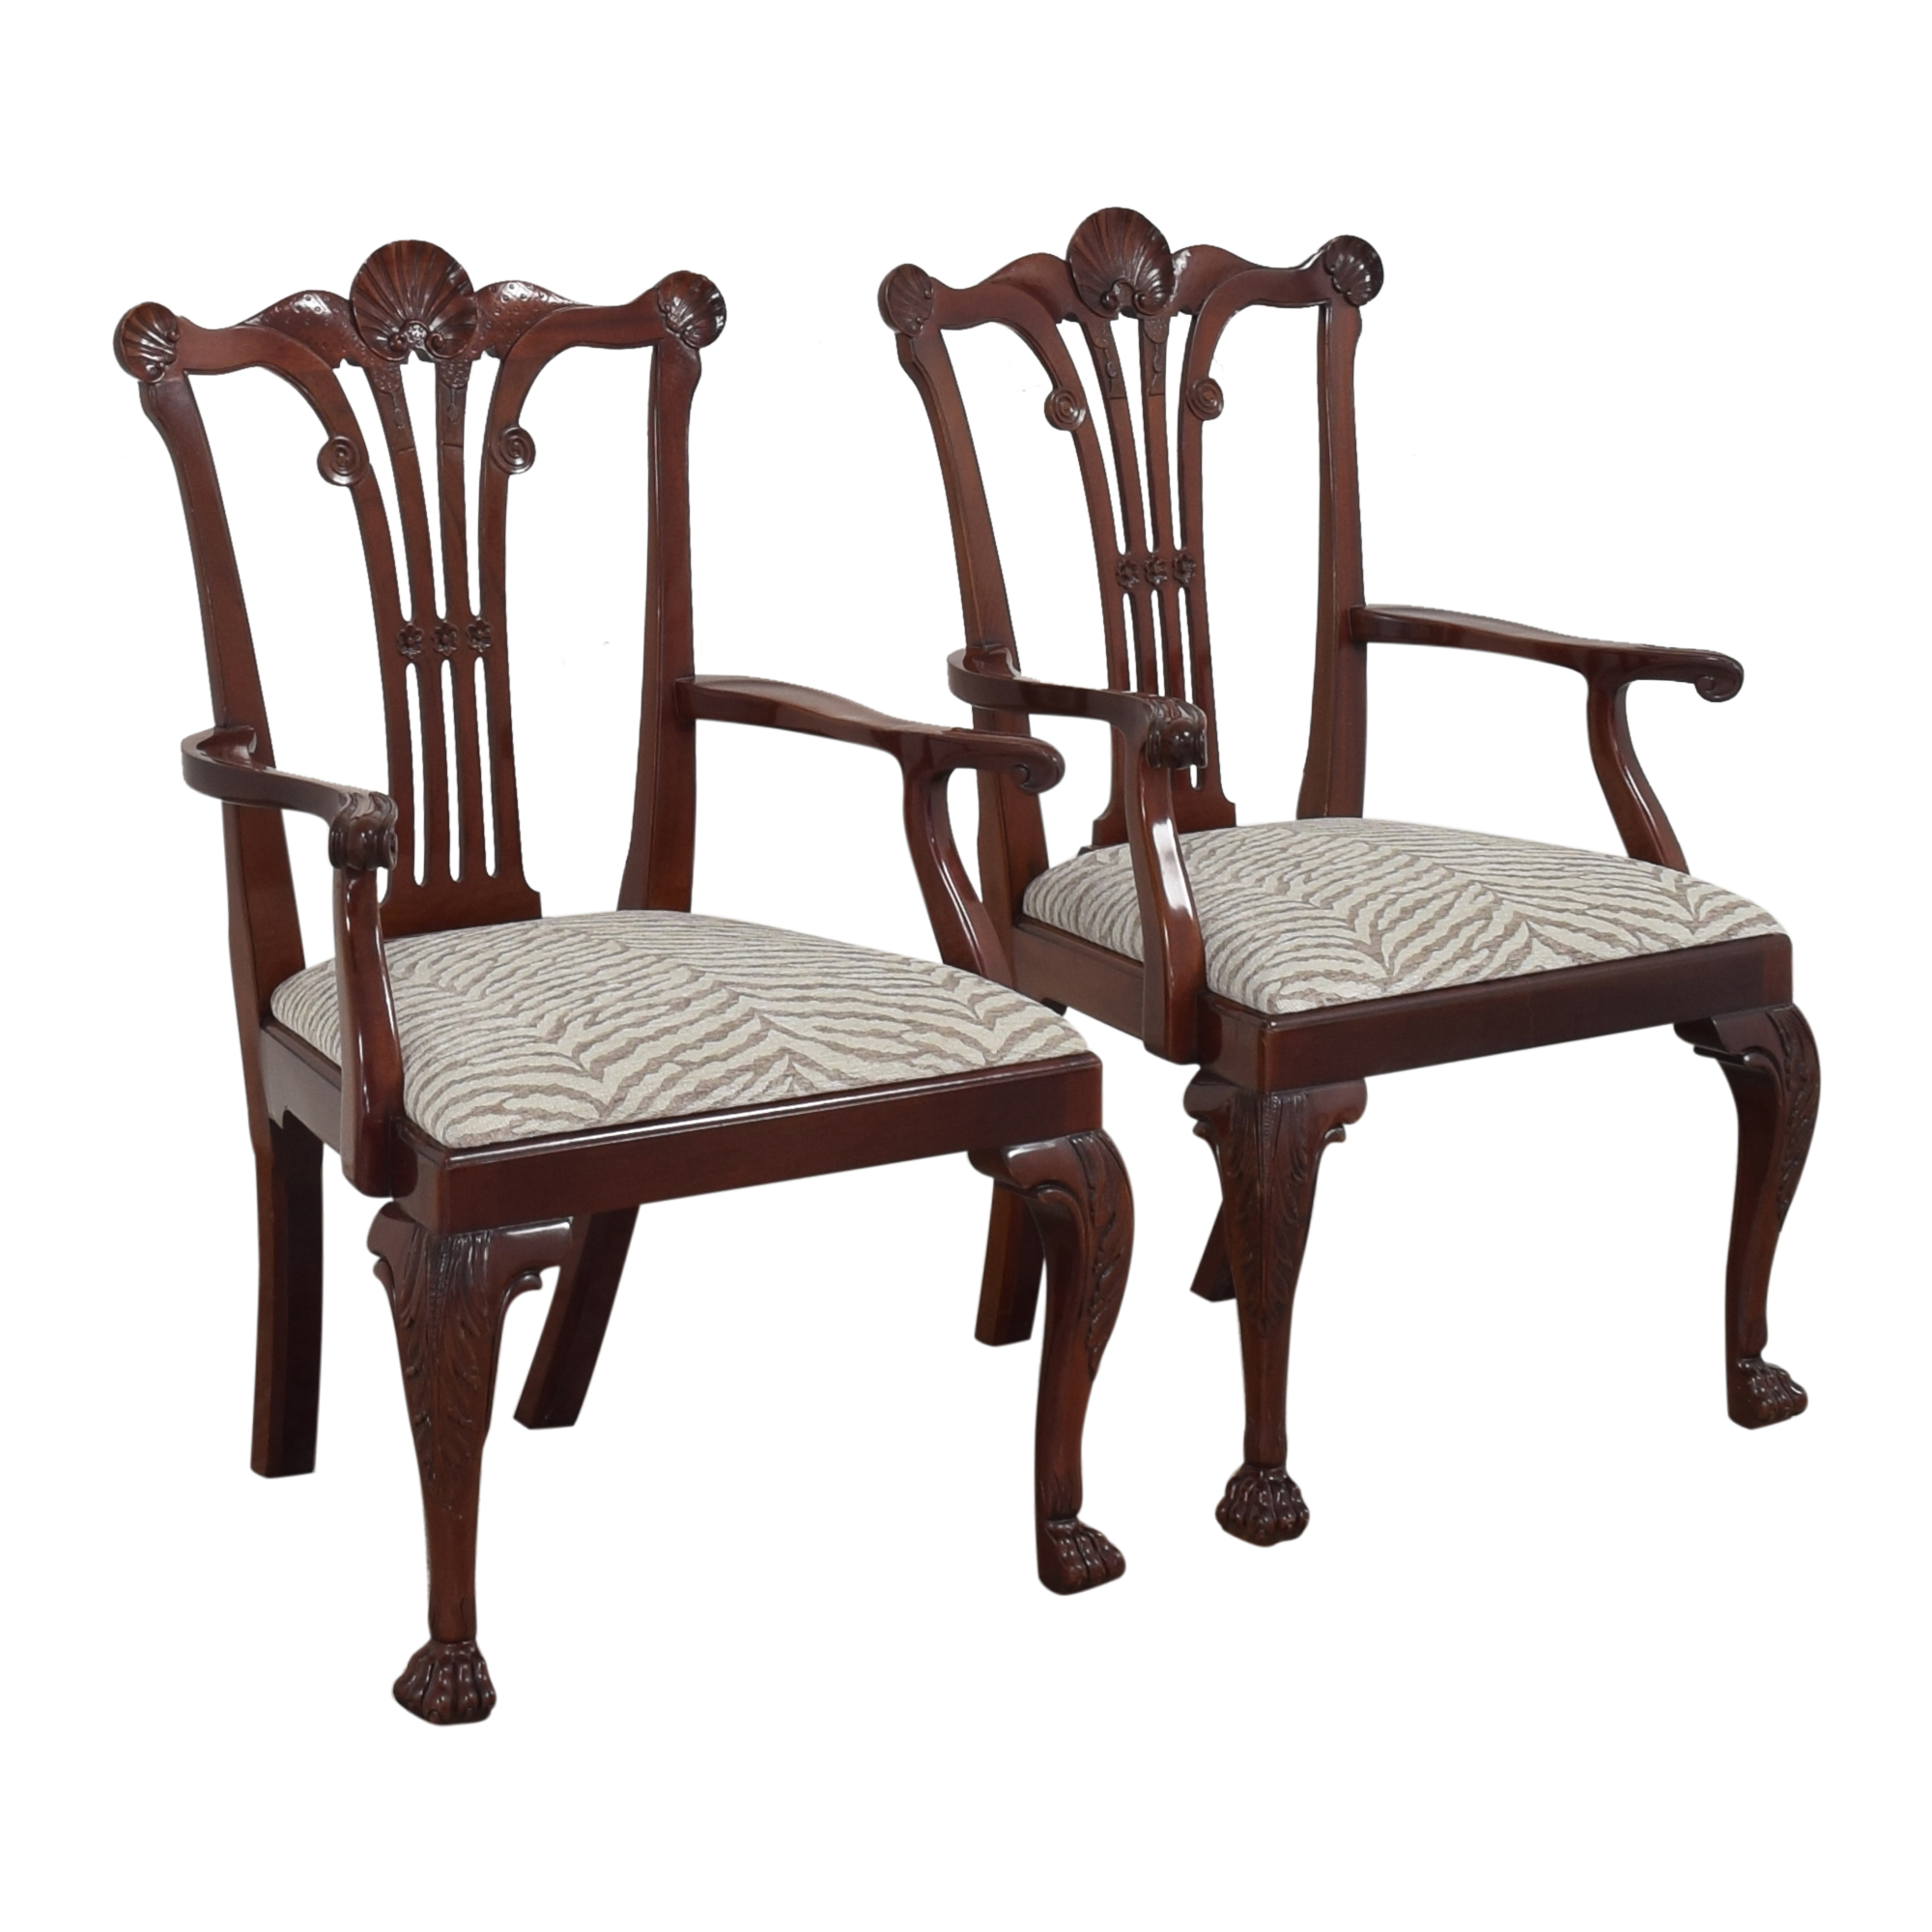 Kindel Kindel Chippendale-Style Dining Arm Chairs coupon